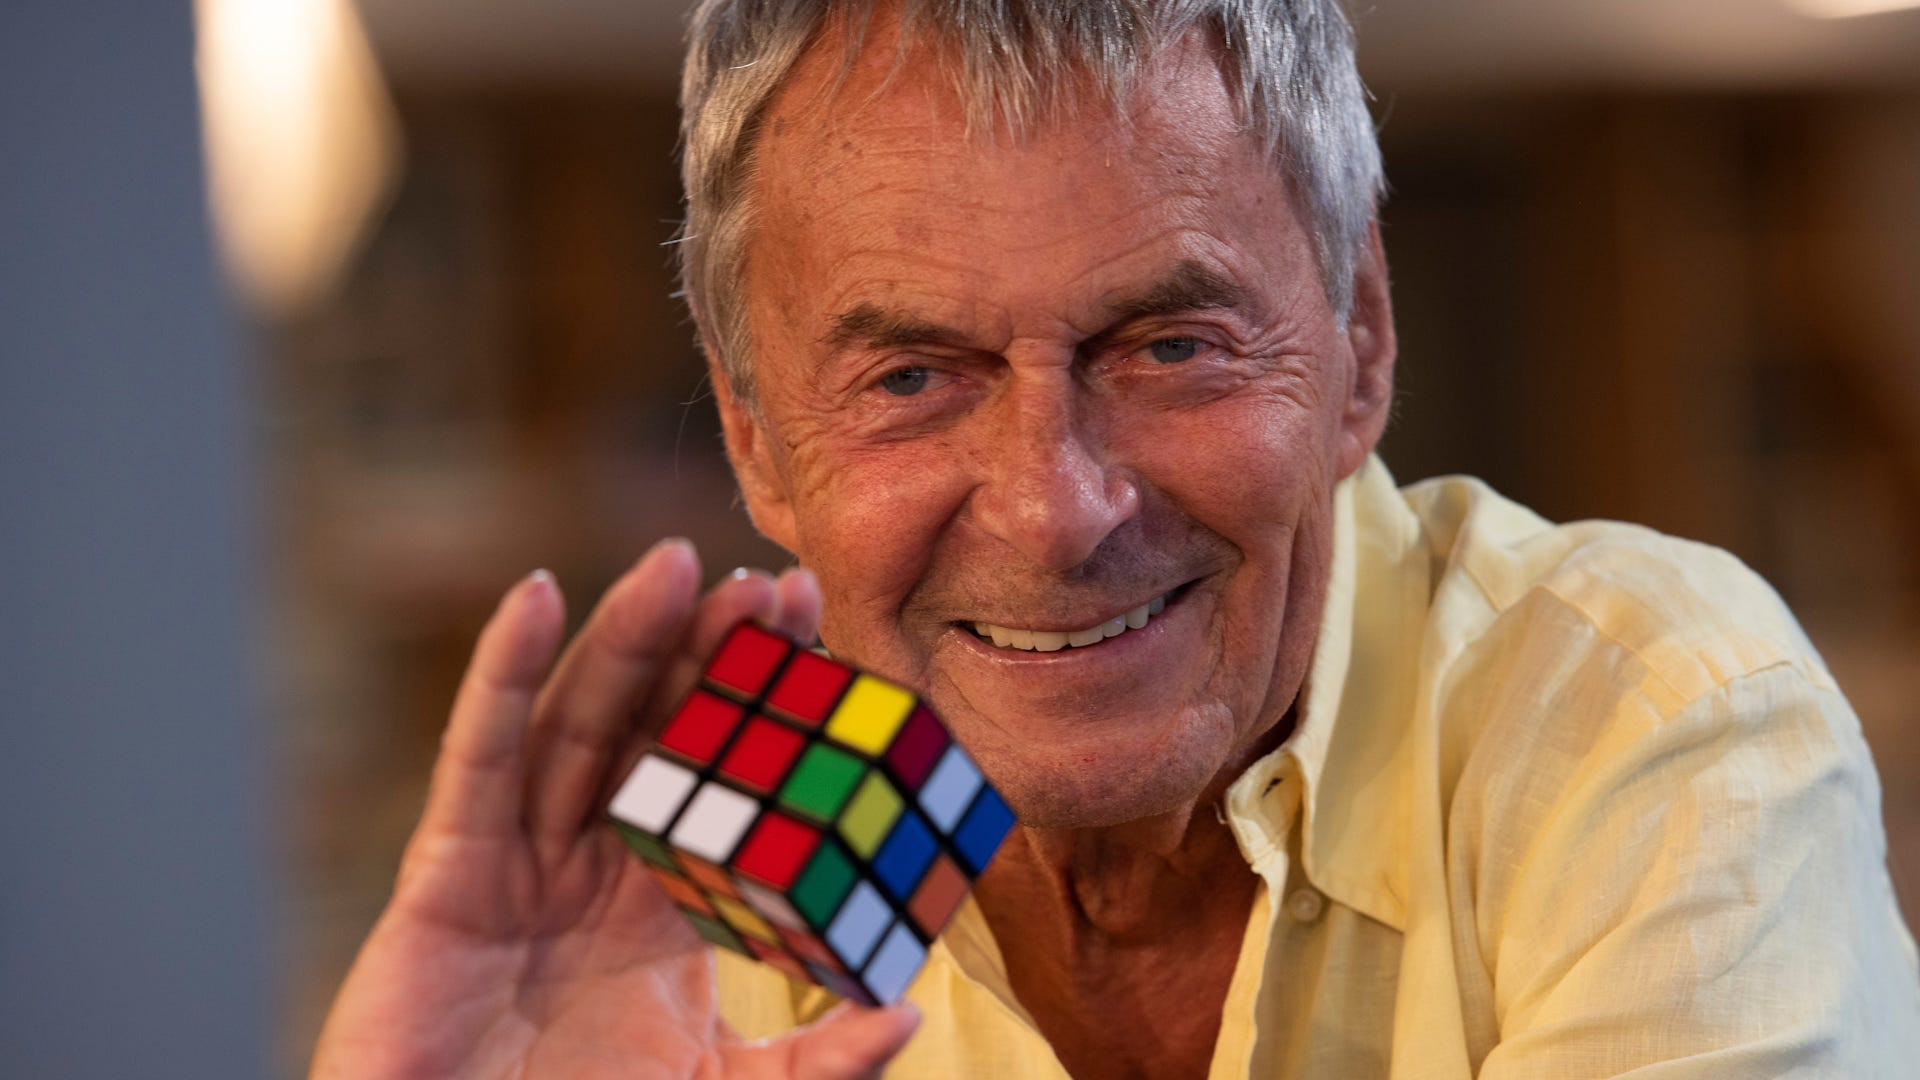 Want To Solve A Rubik S Cube World Championship Competitors Know How Images, Photos, Reviews